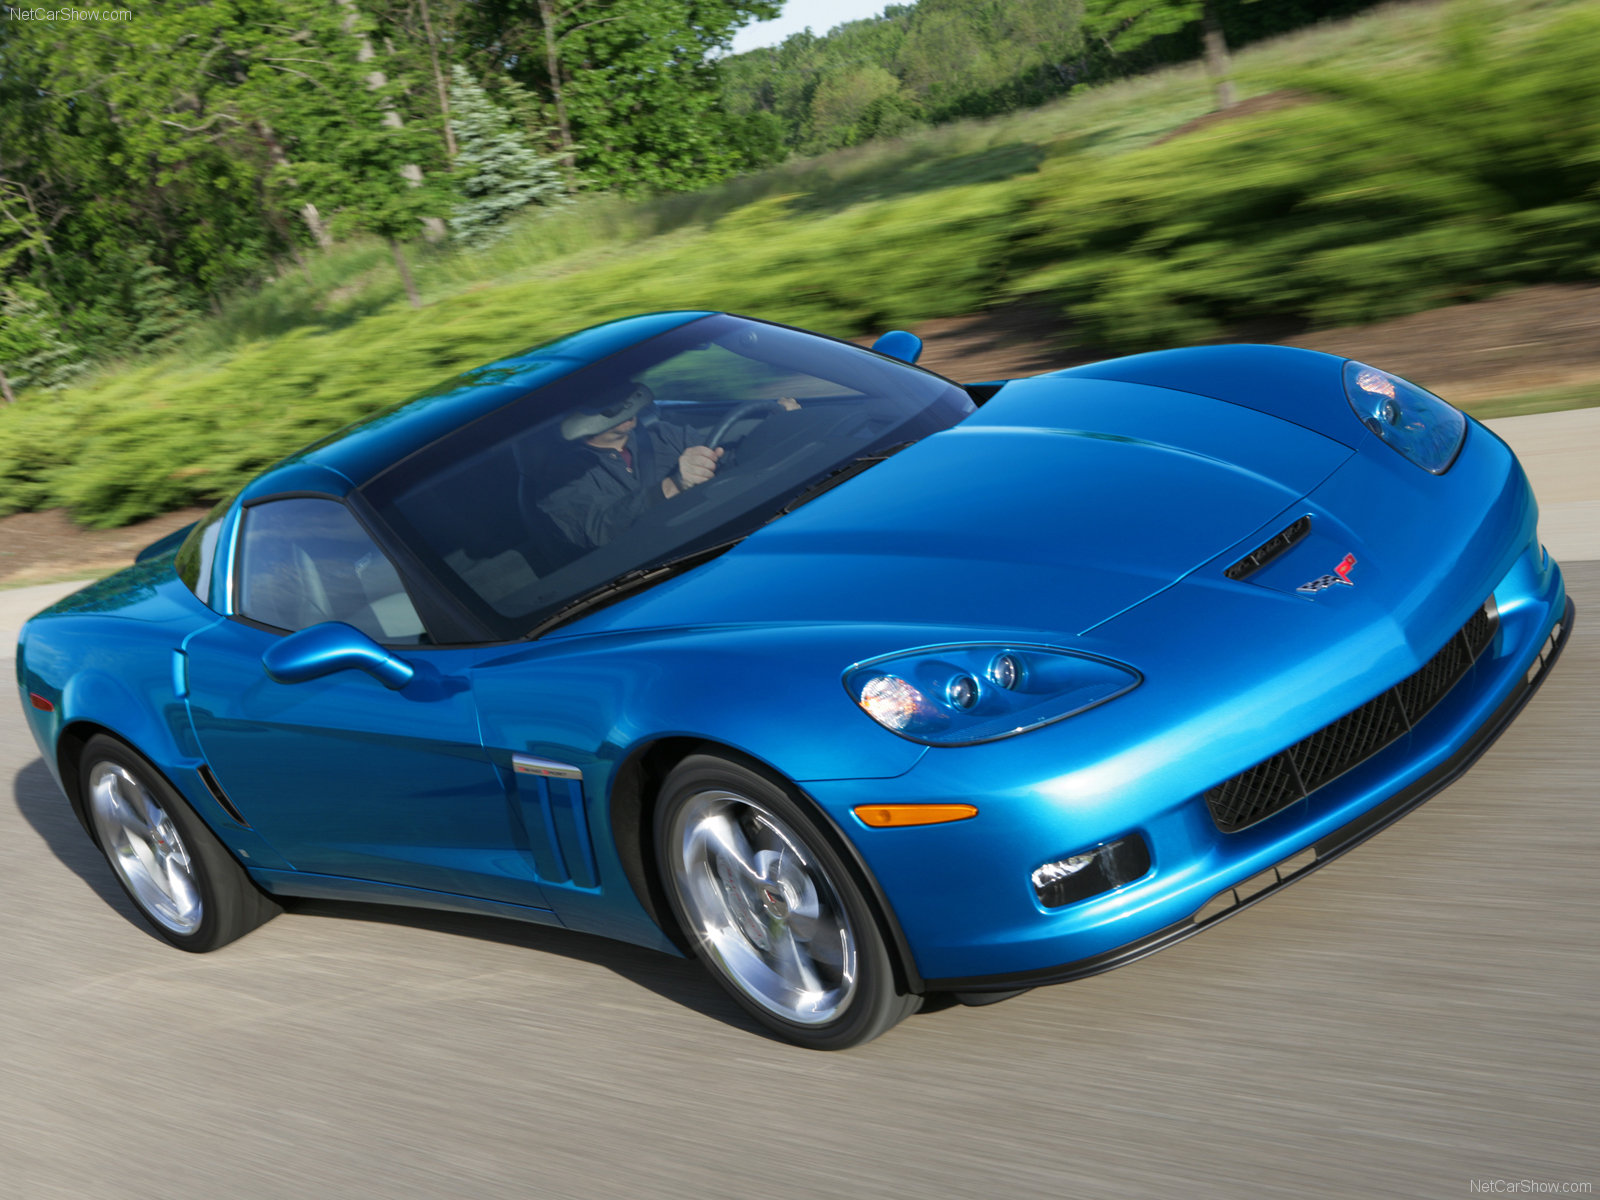 World Of Cars Chevrolet Corvette Grand Sport Images